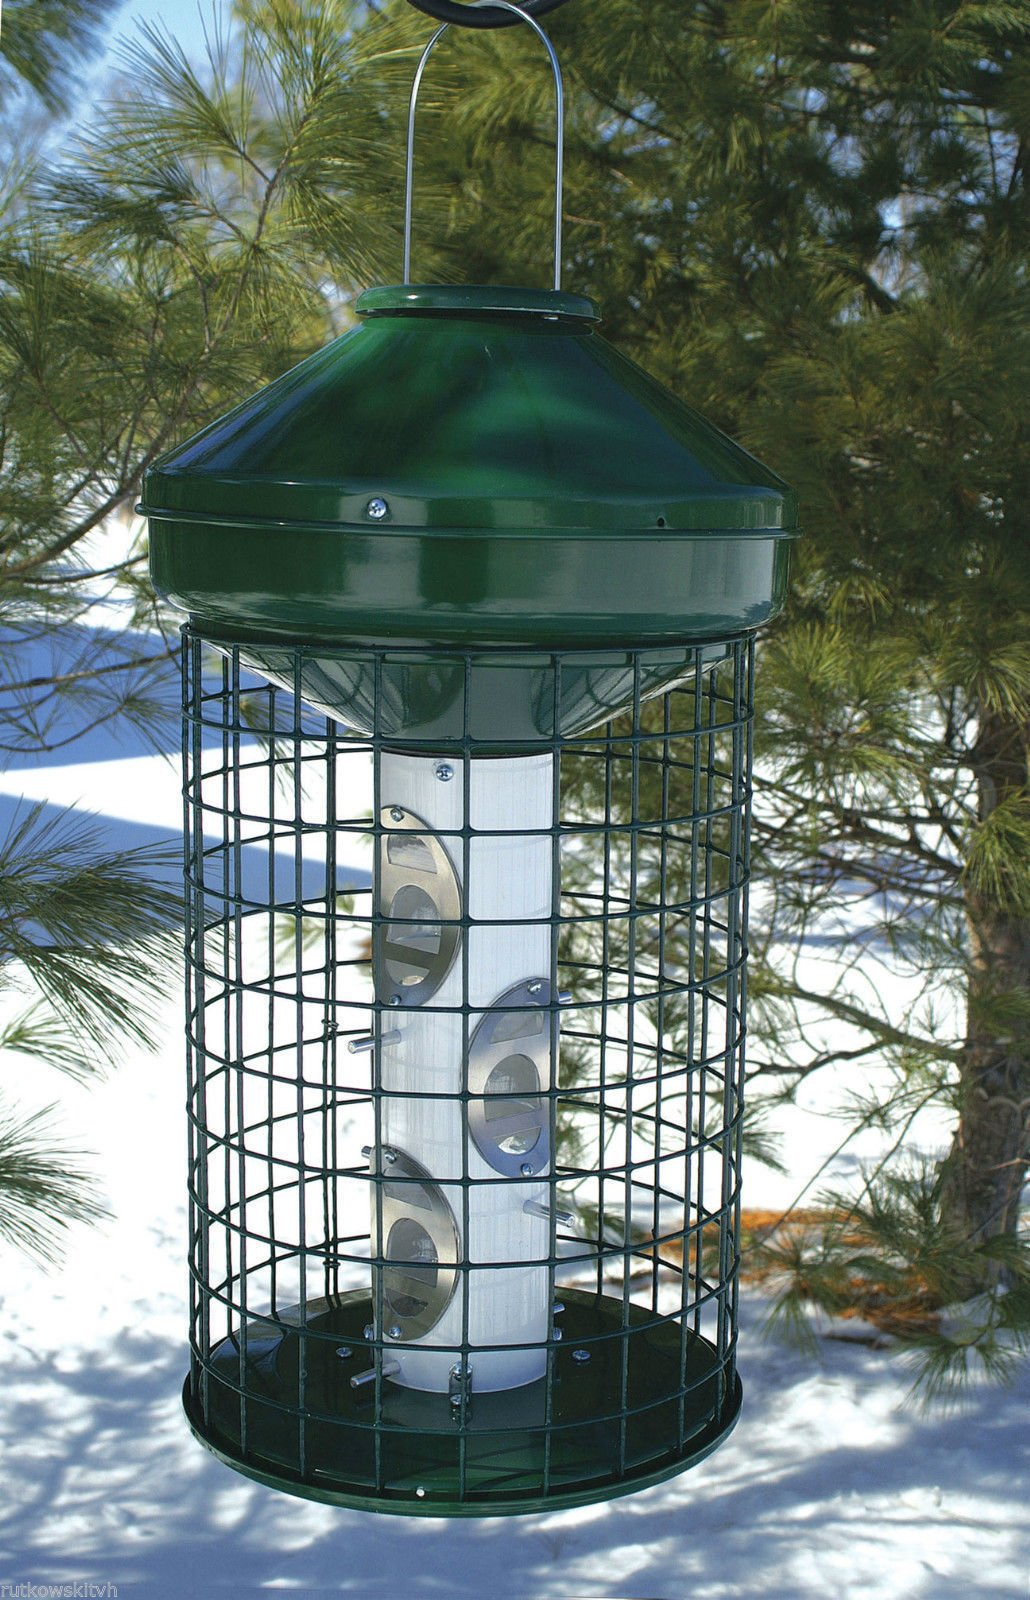 Woodlink Naav1mnp Hd Large Capacity Caged Mixed Seed Bird Feeder by Woodlink